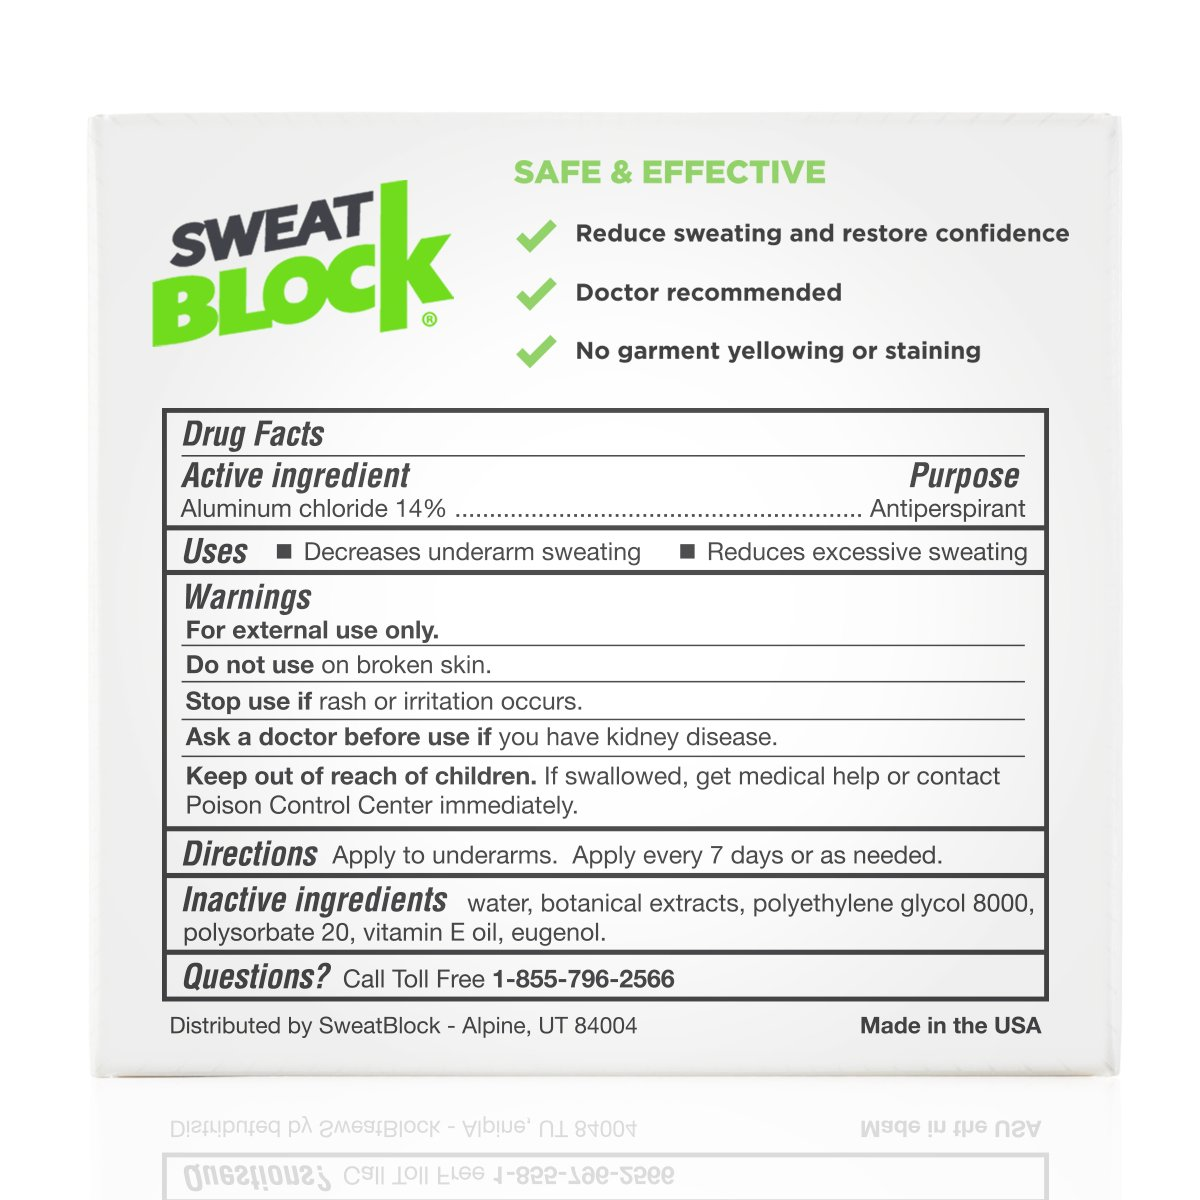 What should I do not to sweat